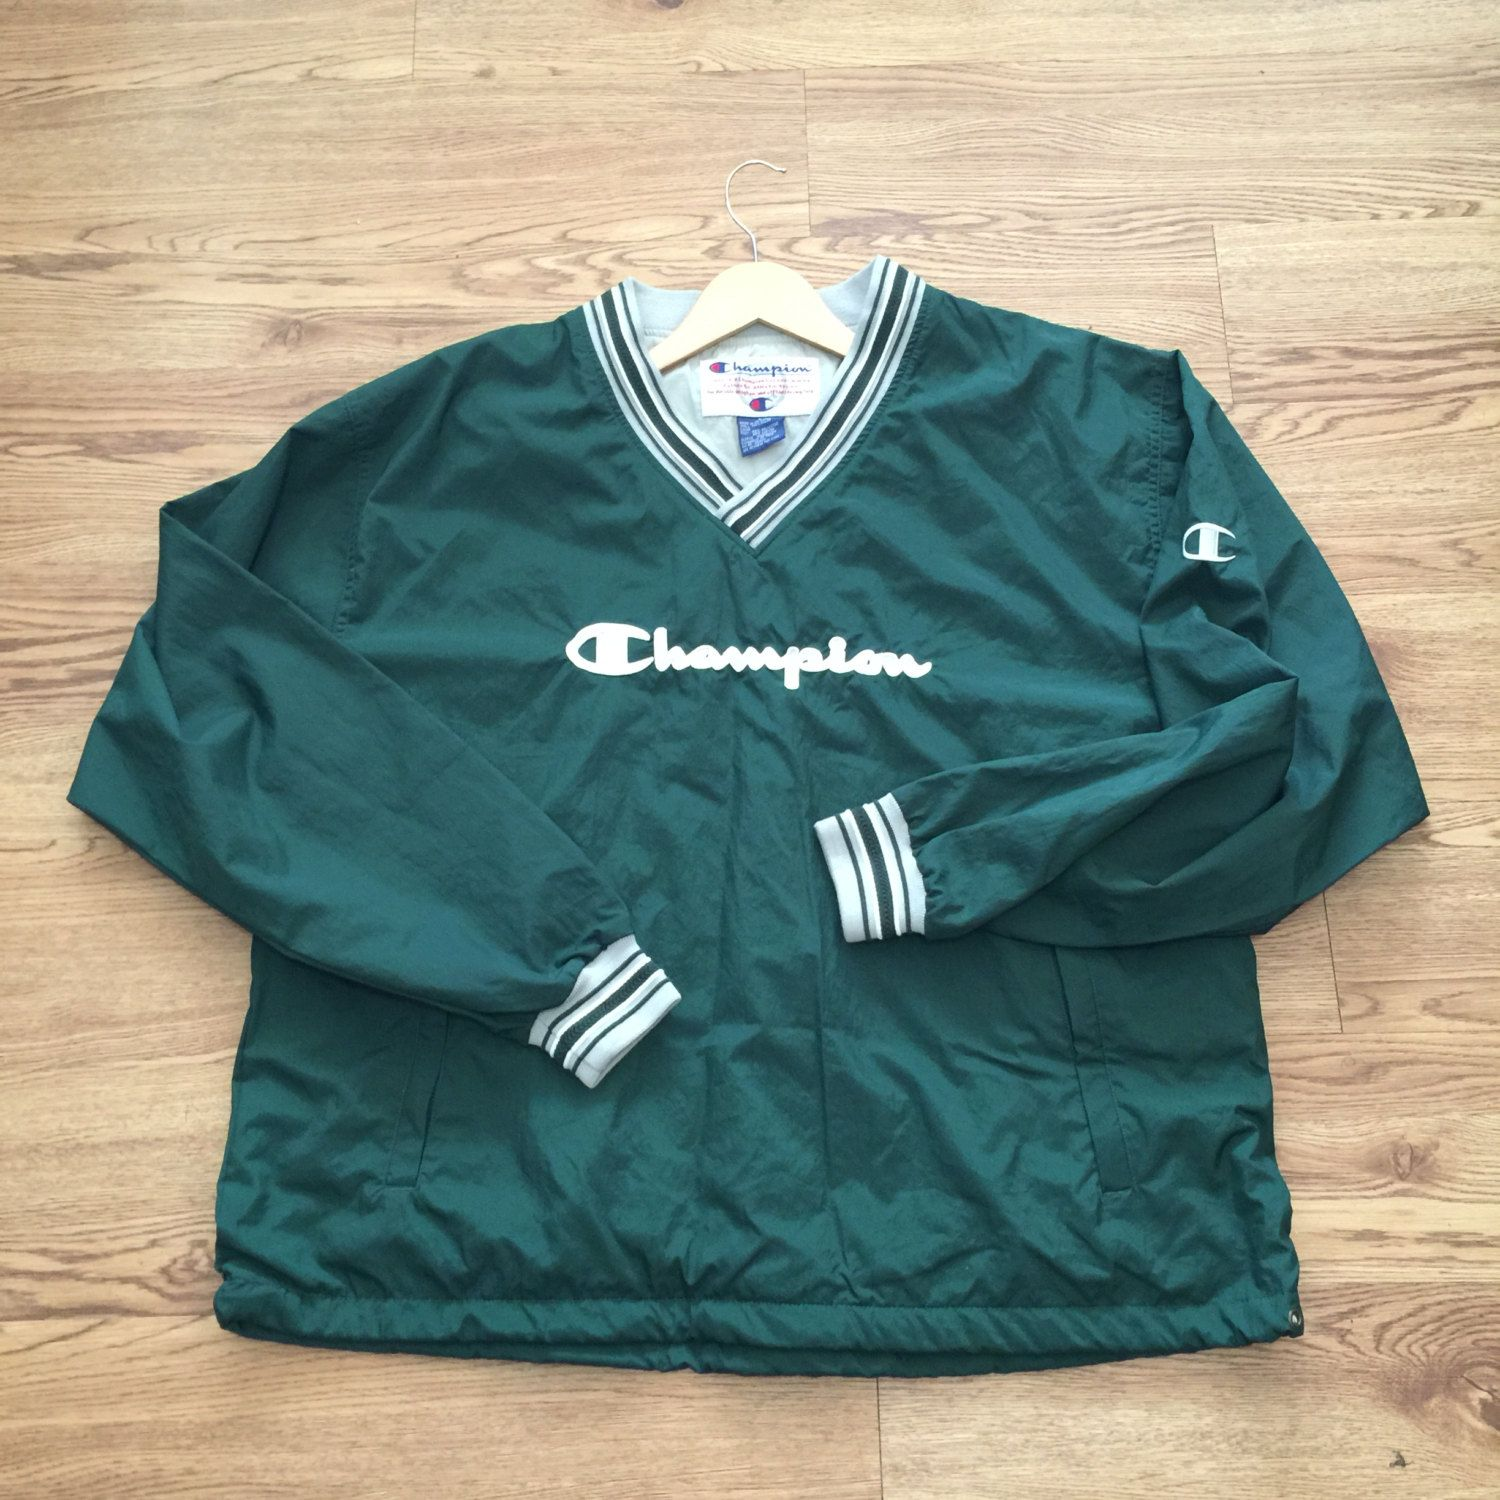 Vintage Champion PullOver Jacket by VNTGvault on Etsy | Vintage ...